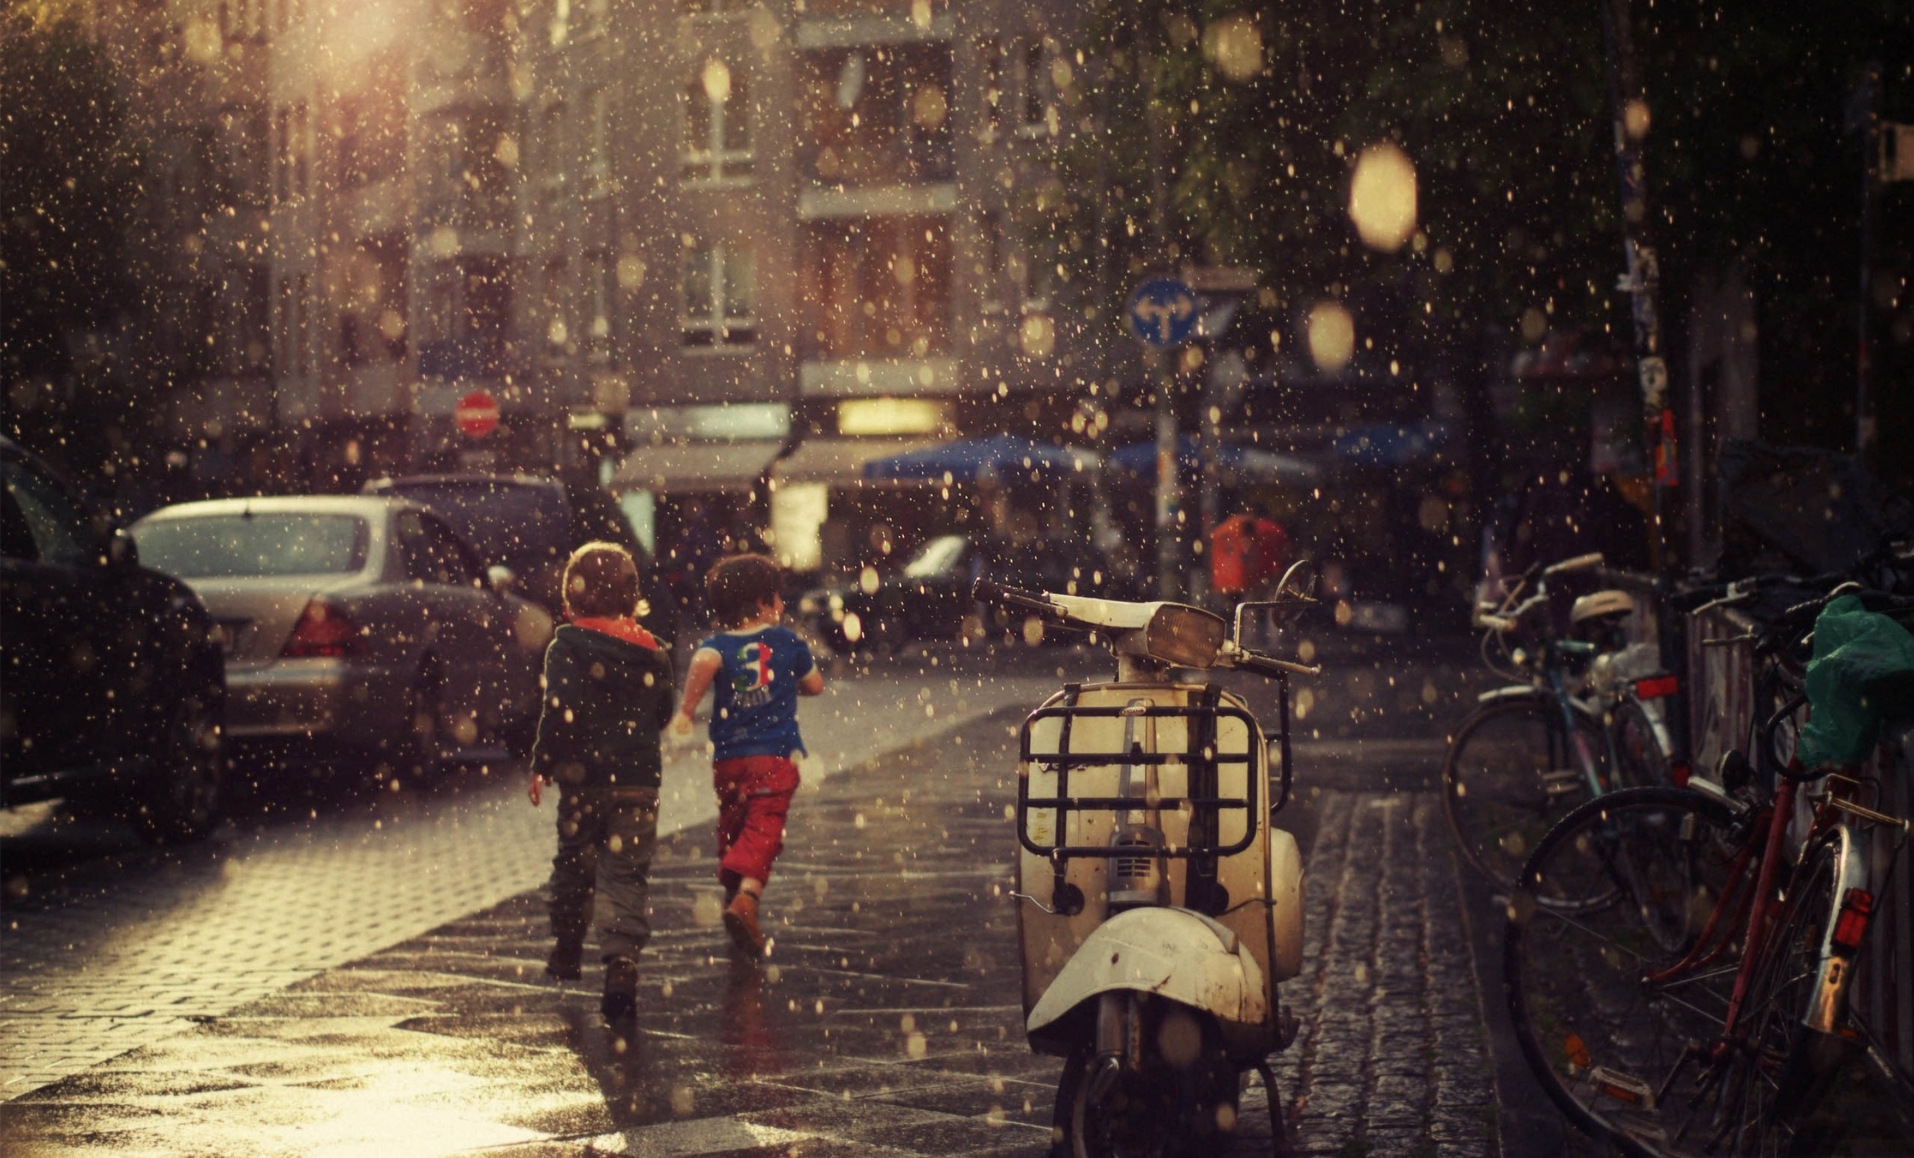 Children Running while raining - Top 10 HD Raindrop Wallpapers for Your Desktop